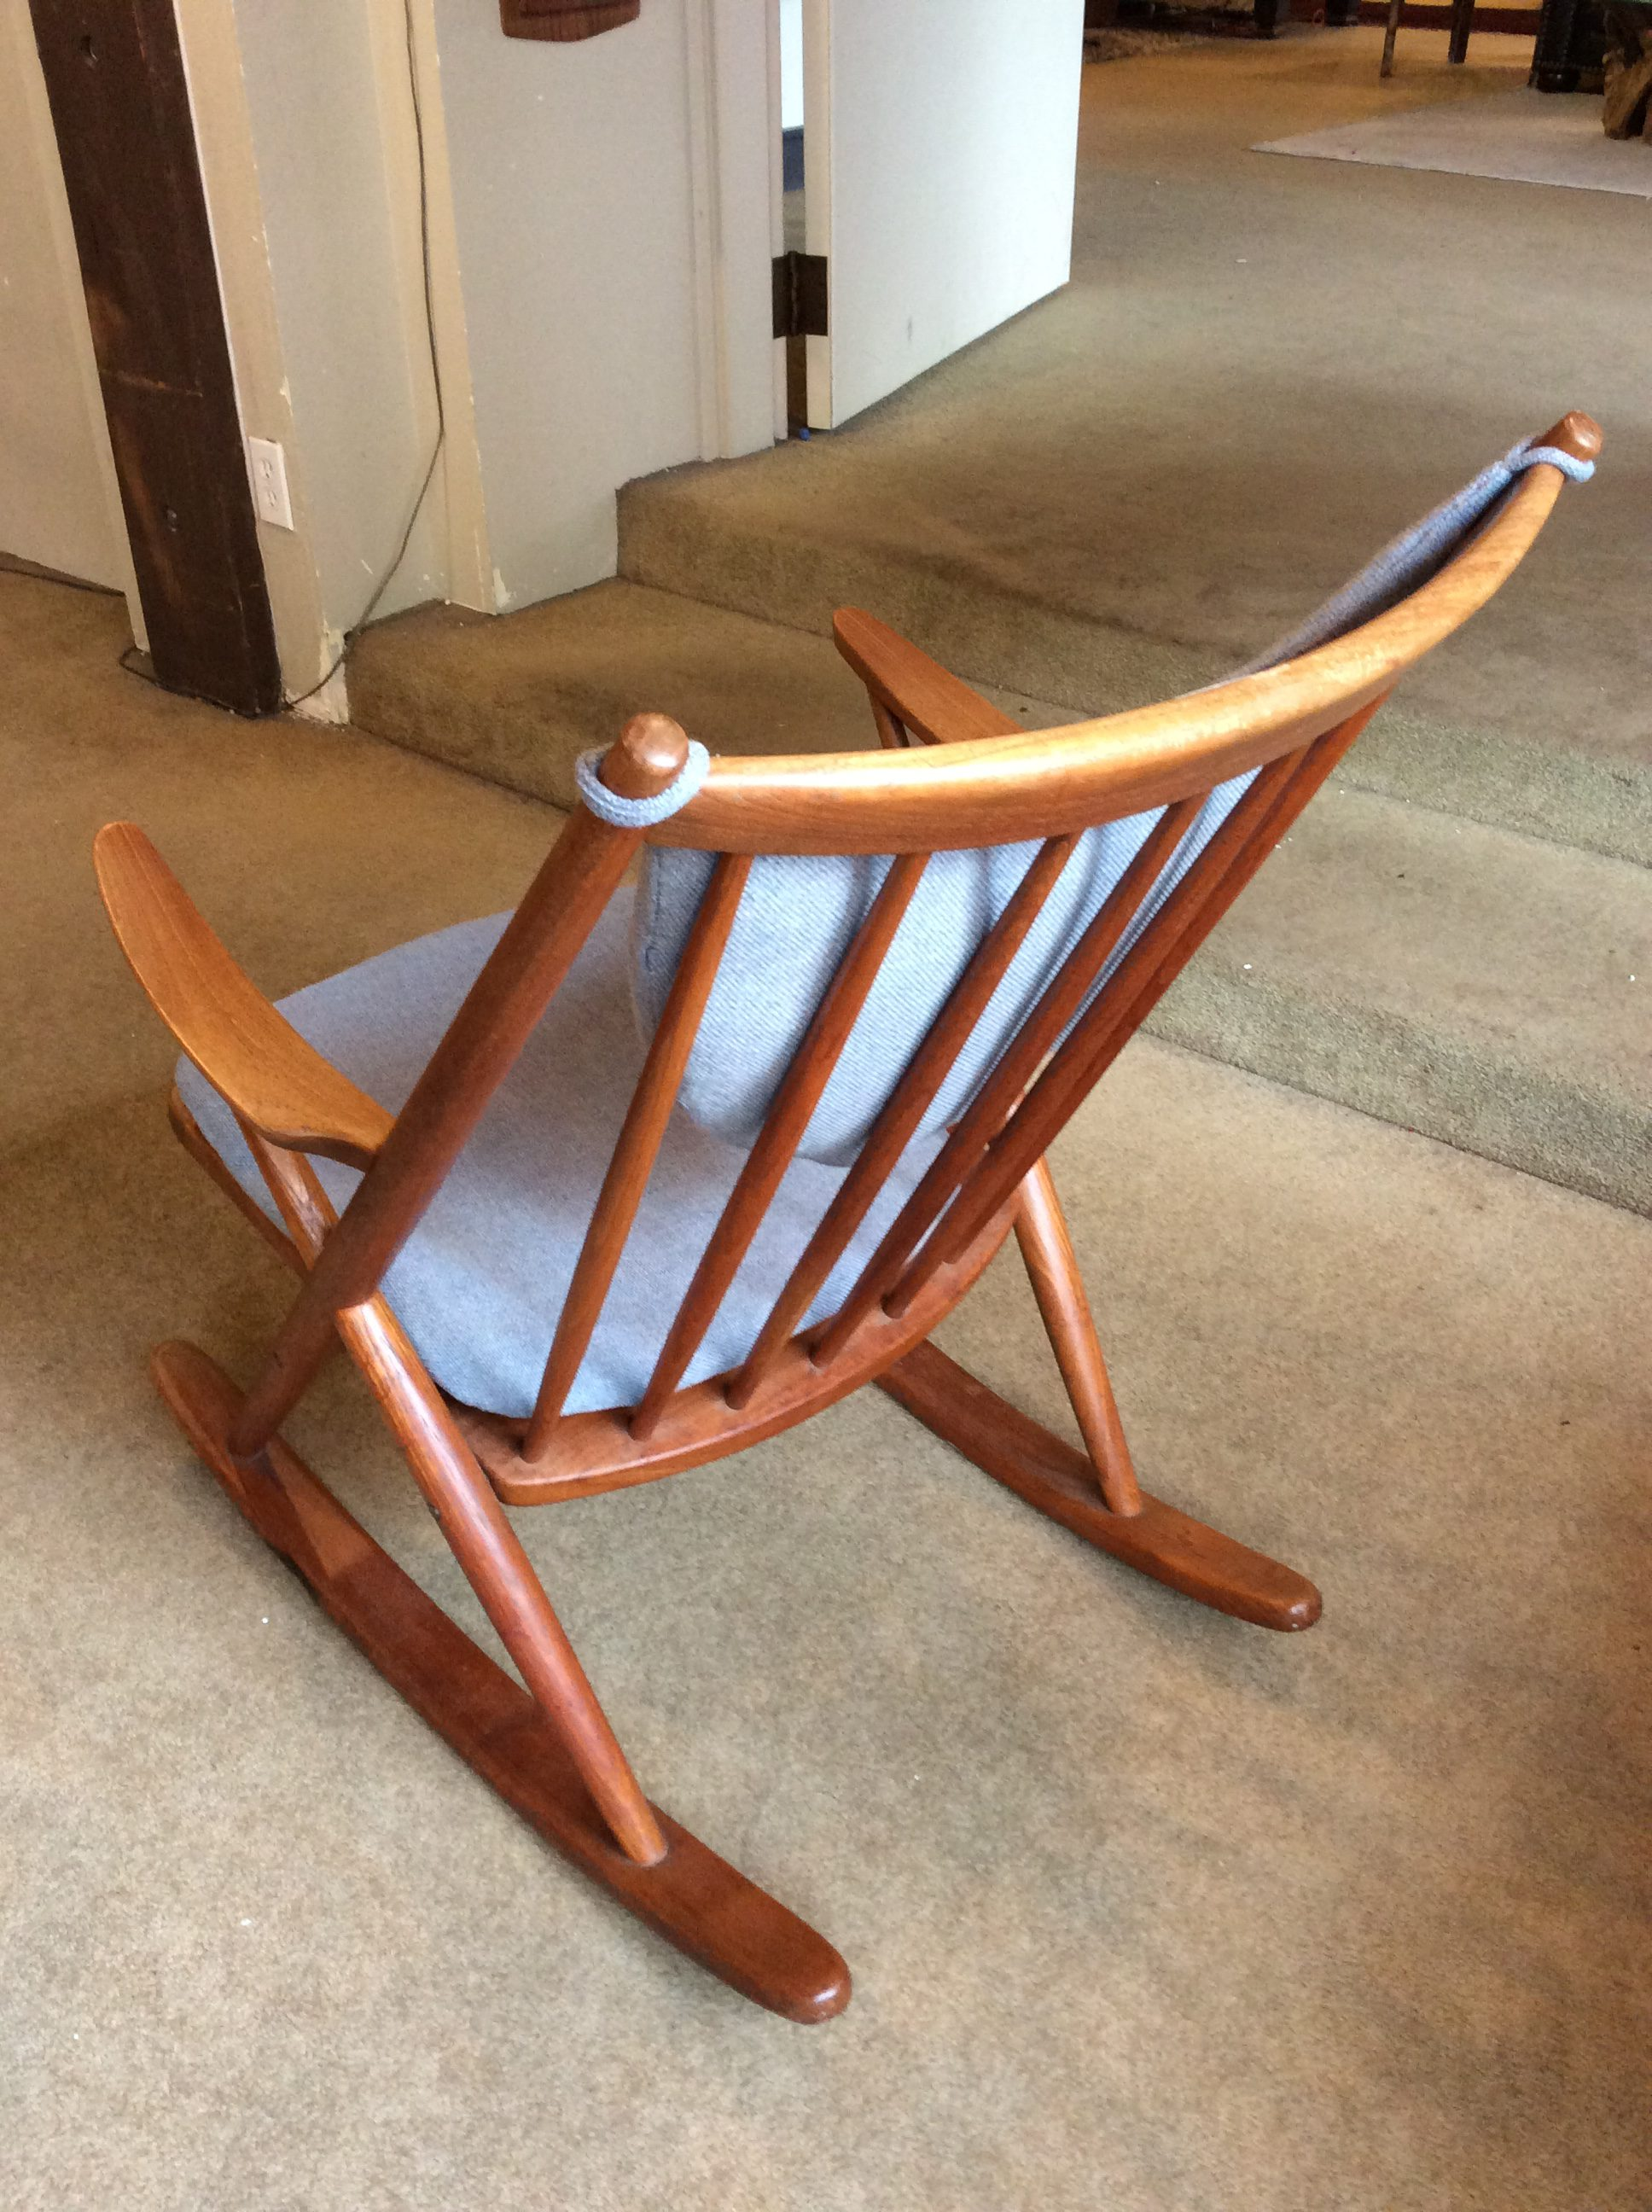 austrian frame rainer mid roland with beech listings architect century vinterior midcentury rocking chair by